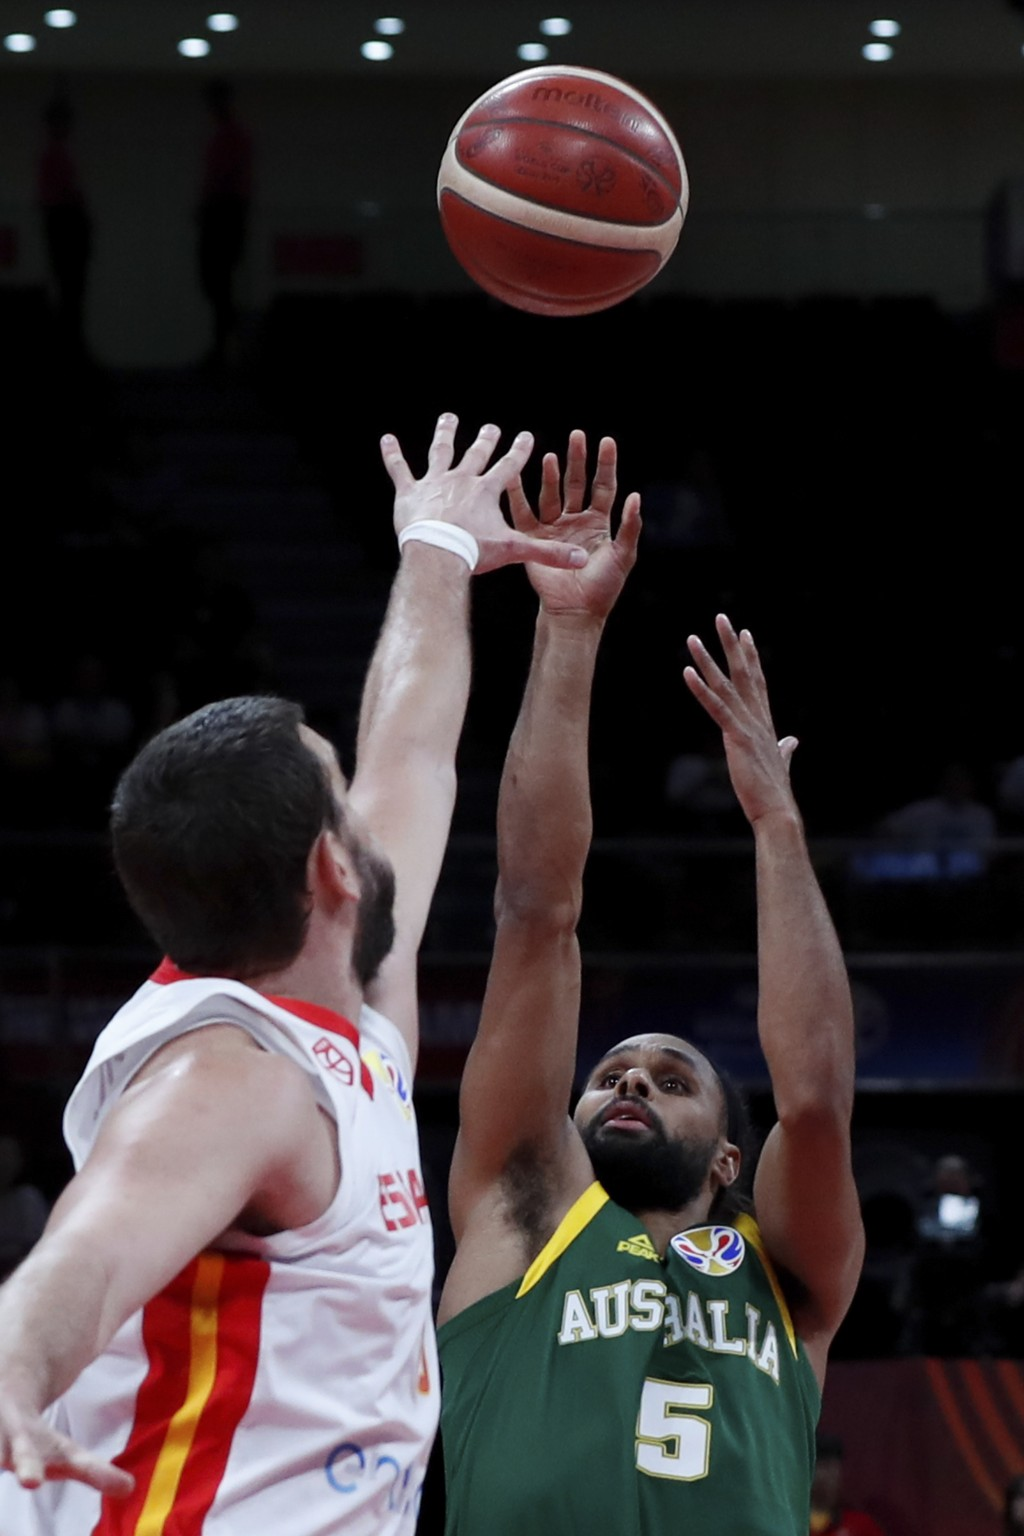 Patty Mills of Australia puts a shot over Marc Gasol of Spain during their semifinals match for the FIBA Basketball World Cup at the Cadillac Arena in